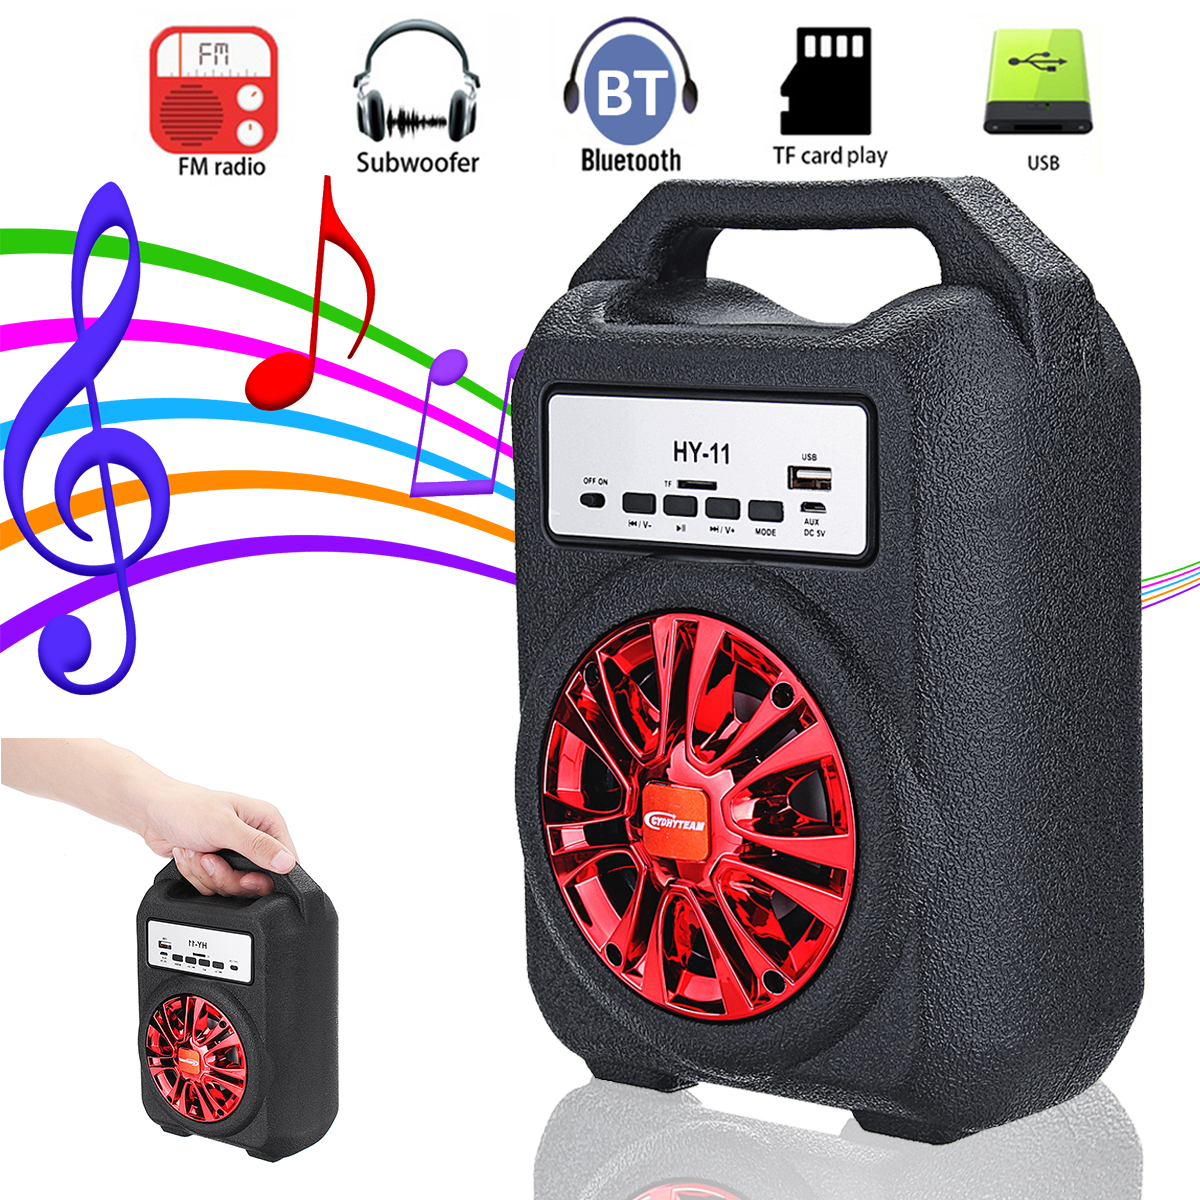 New Handle Bluetooth Speaker Portable Wireless Subwoofer Loudspeaker Sound System Outdoor Music Player Speaker With LED Screen